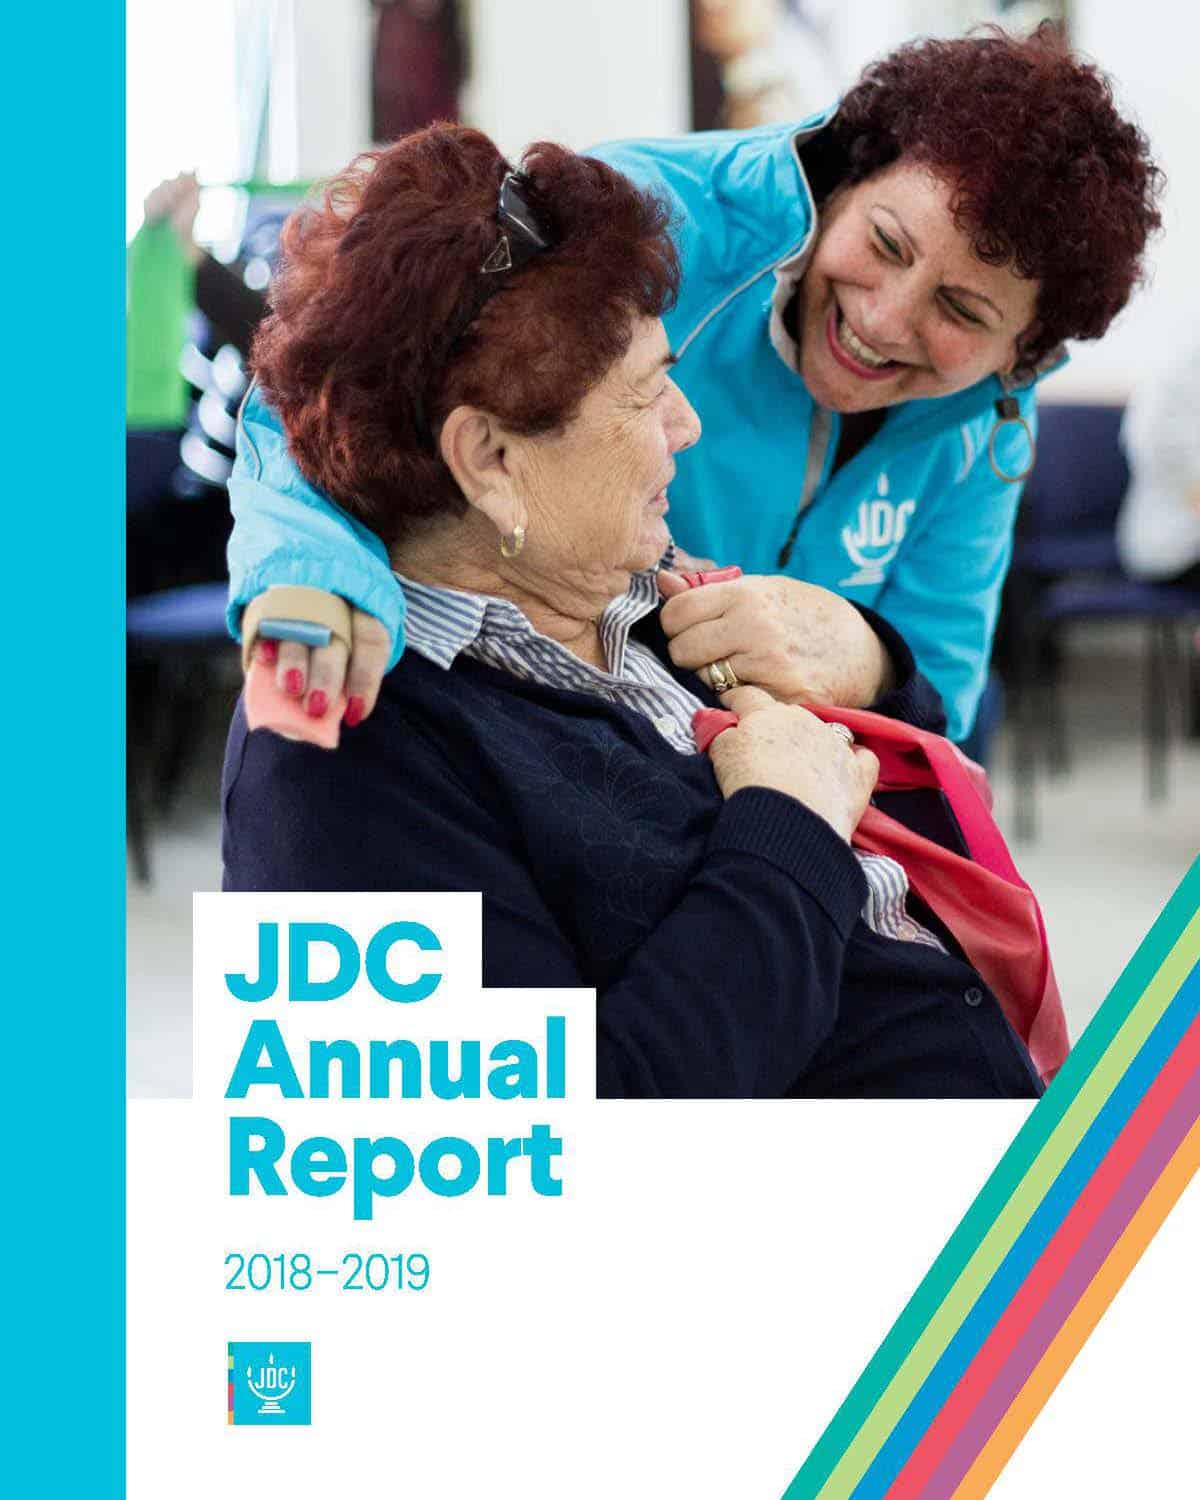 JDC's Annual Report 2019 in which a JDC volunteer in Israel embraces an elderly client and smiles.